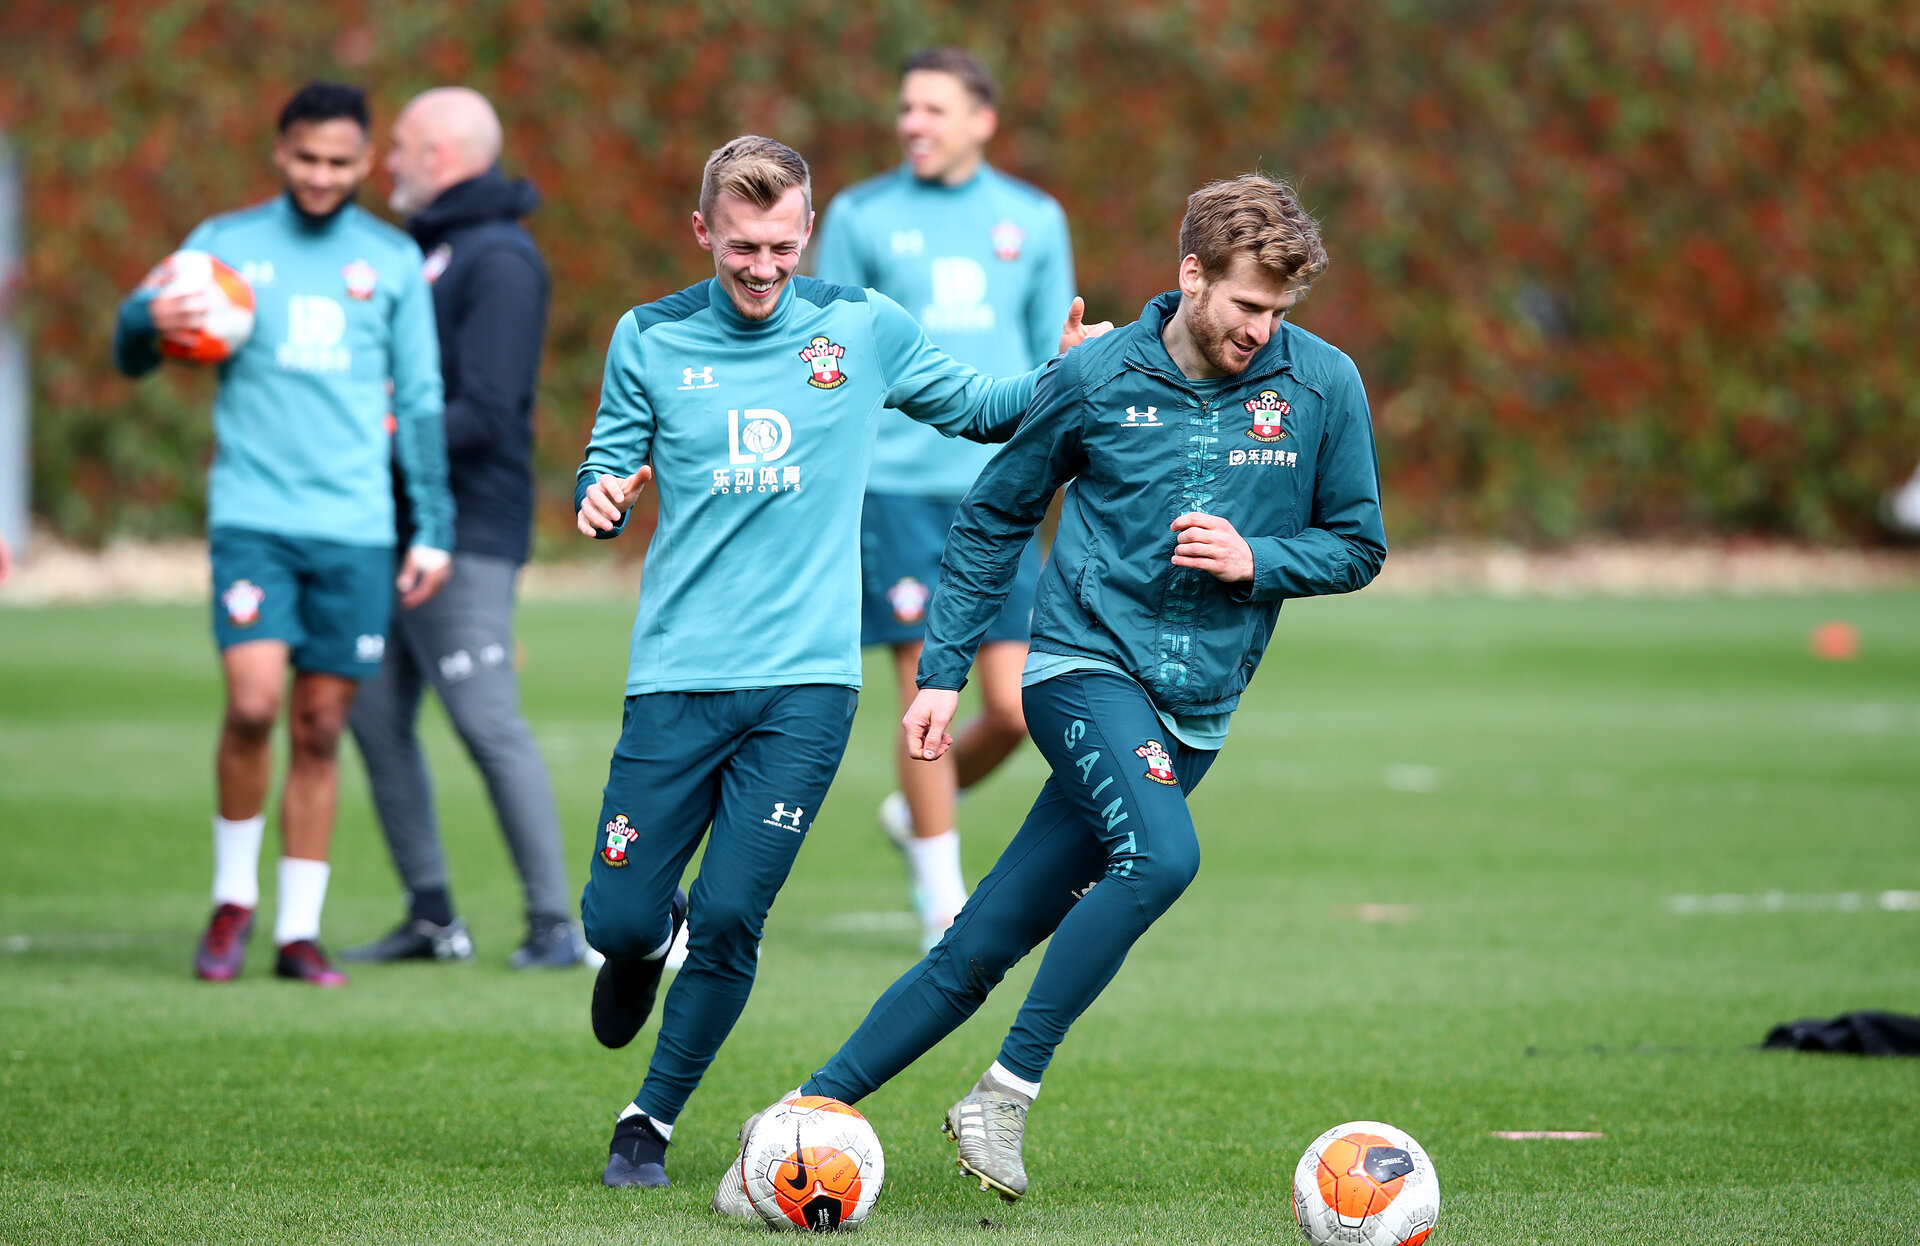 SOUTHAMPTON, ENGLAND - MARCH 12: James Ward-Prowse(L) and Stuart Armstrong during a Southampton FC training session at the Staplewood Campus on March 12, 2020 in Southampton, England. (Photo by Matt Watson/Southampton FC via Getty Images)